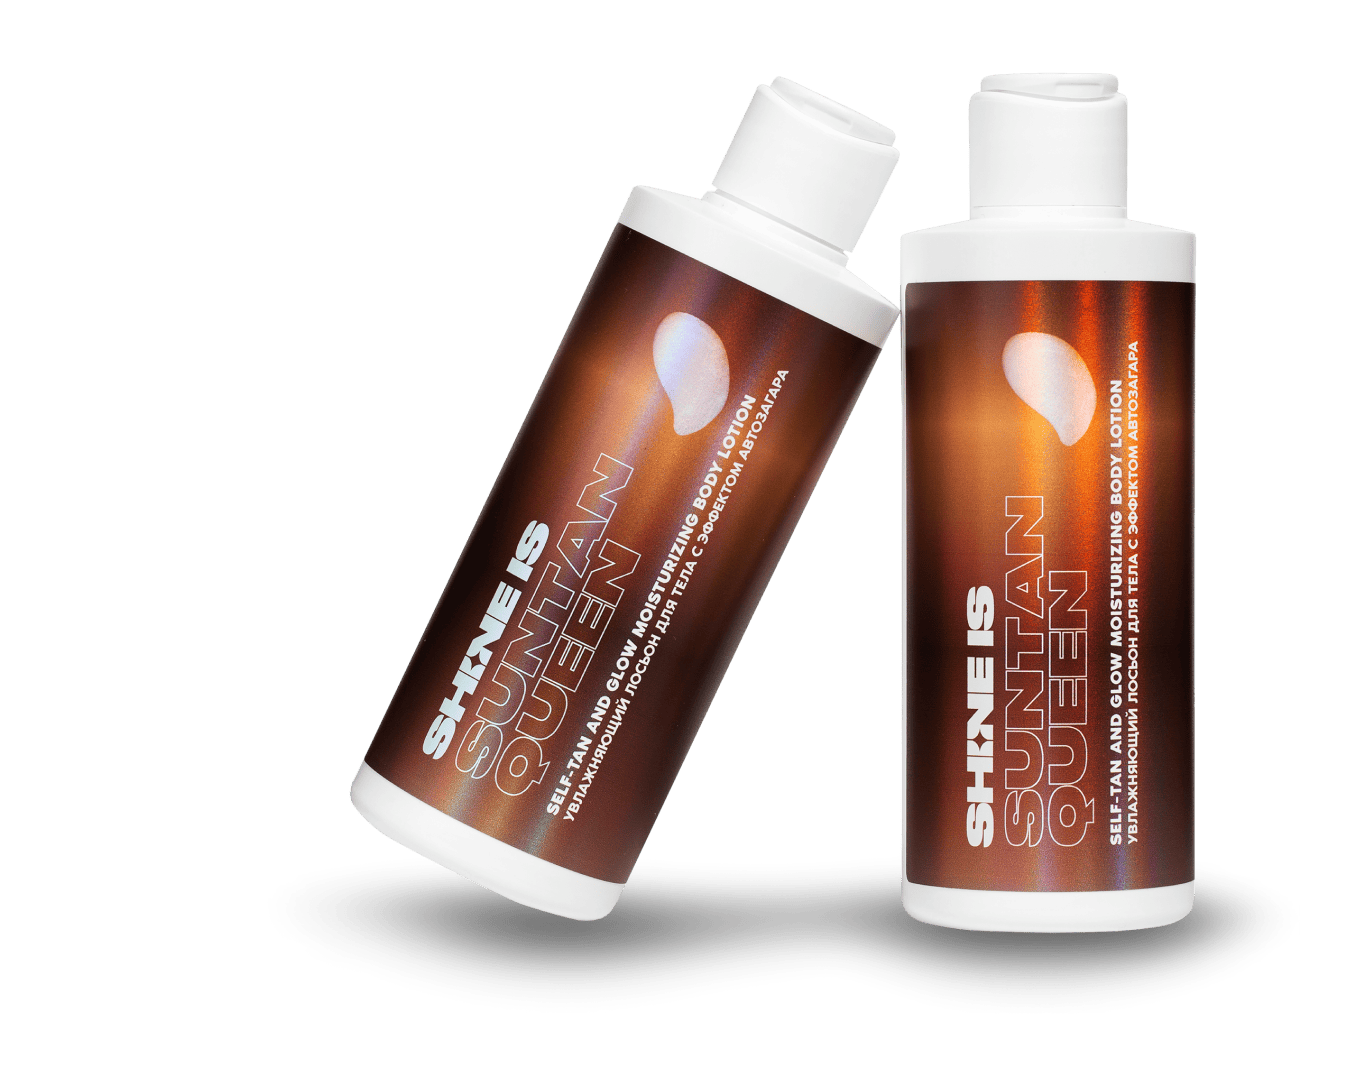 Self-Tan and Glow Moisturizing Body Lotion